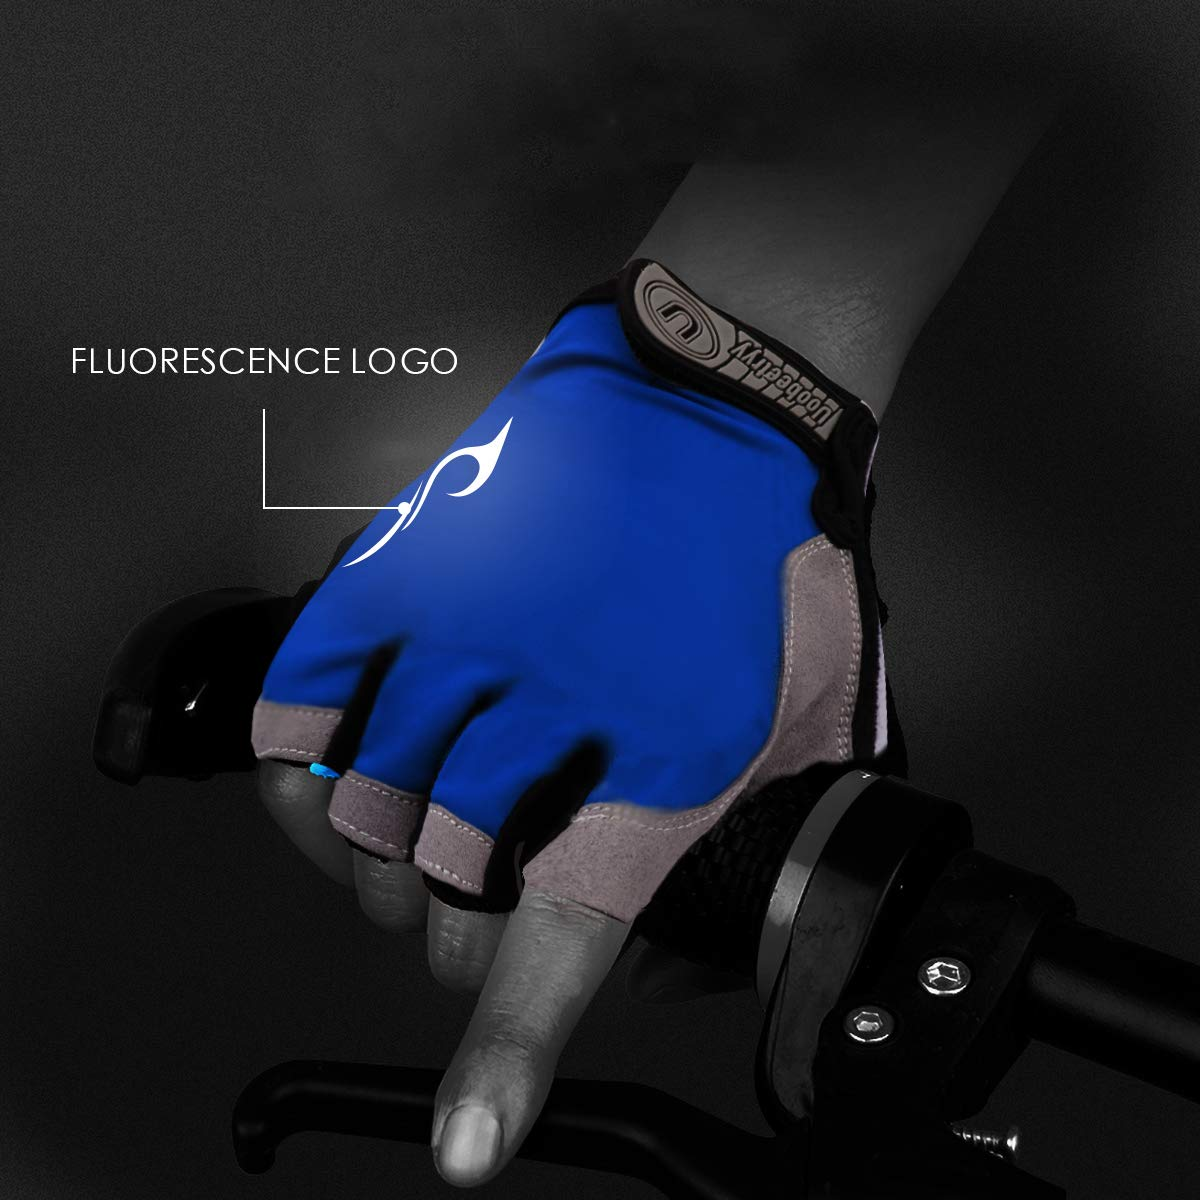 Uoobeetryy Reflective Cycling Gloves Cooling Half Finger Mountain Bike Glove for Men Women Bicycling Breathable Gel Padded Anti Slip Shock-Absorbing MTB DH Road Bicycle Gloves